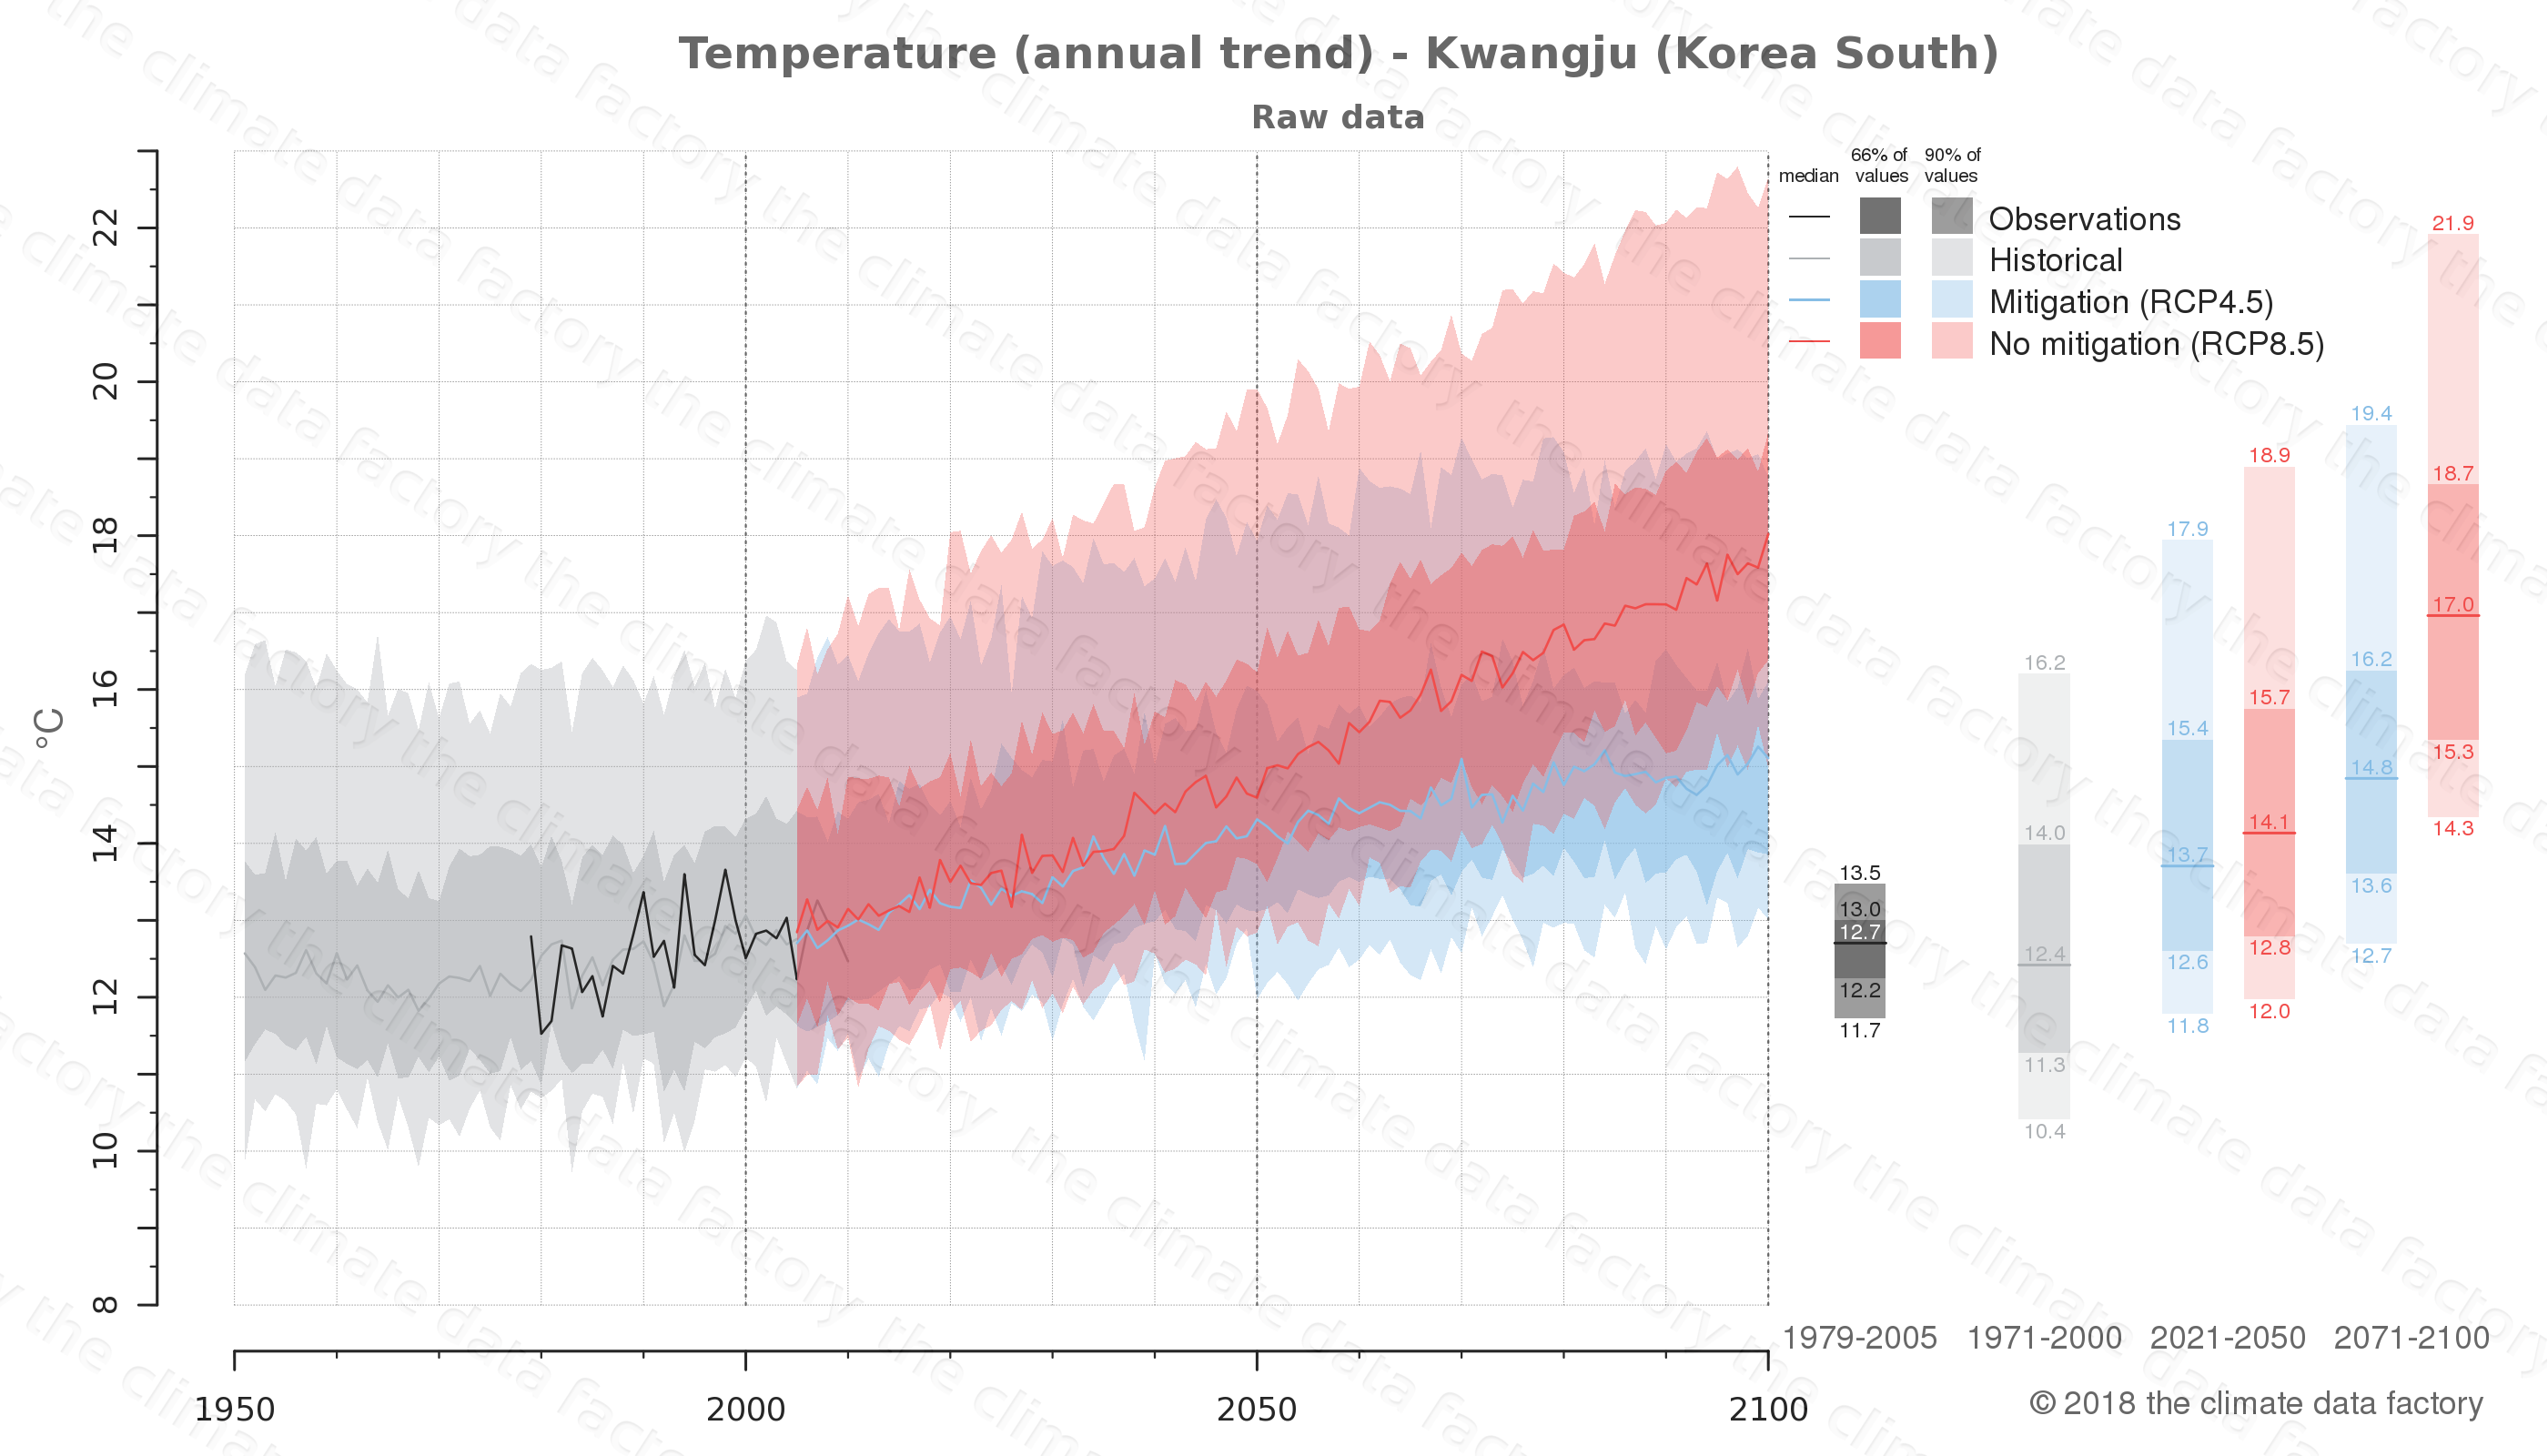 climate change data policy adaptation climate graph city data temperature kwangju south korea